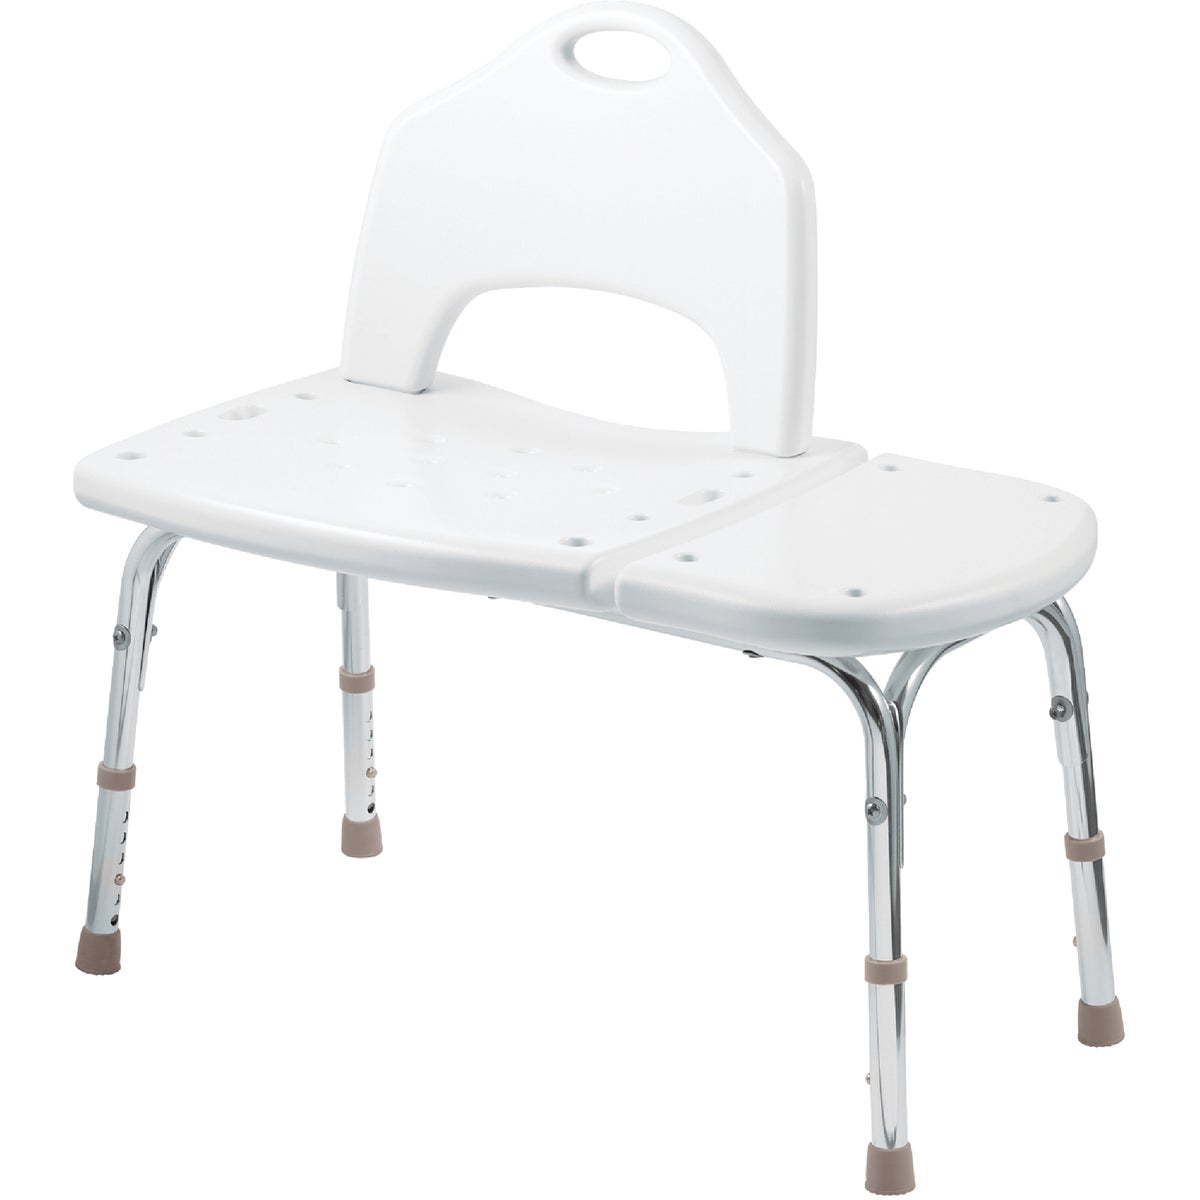 ADJUSTABLE TRANSFER SEAT - DN7065 by C S I Donner